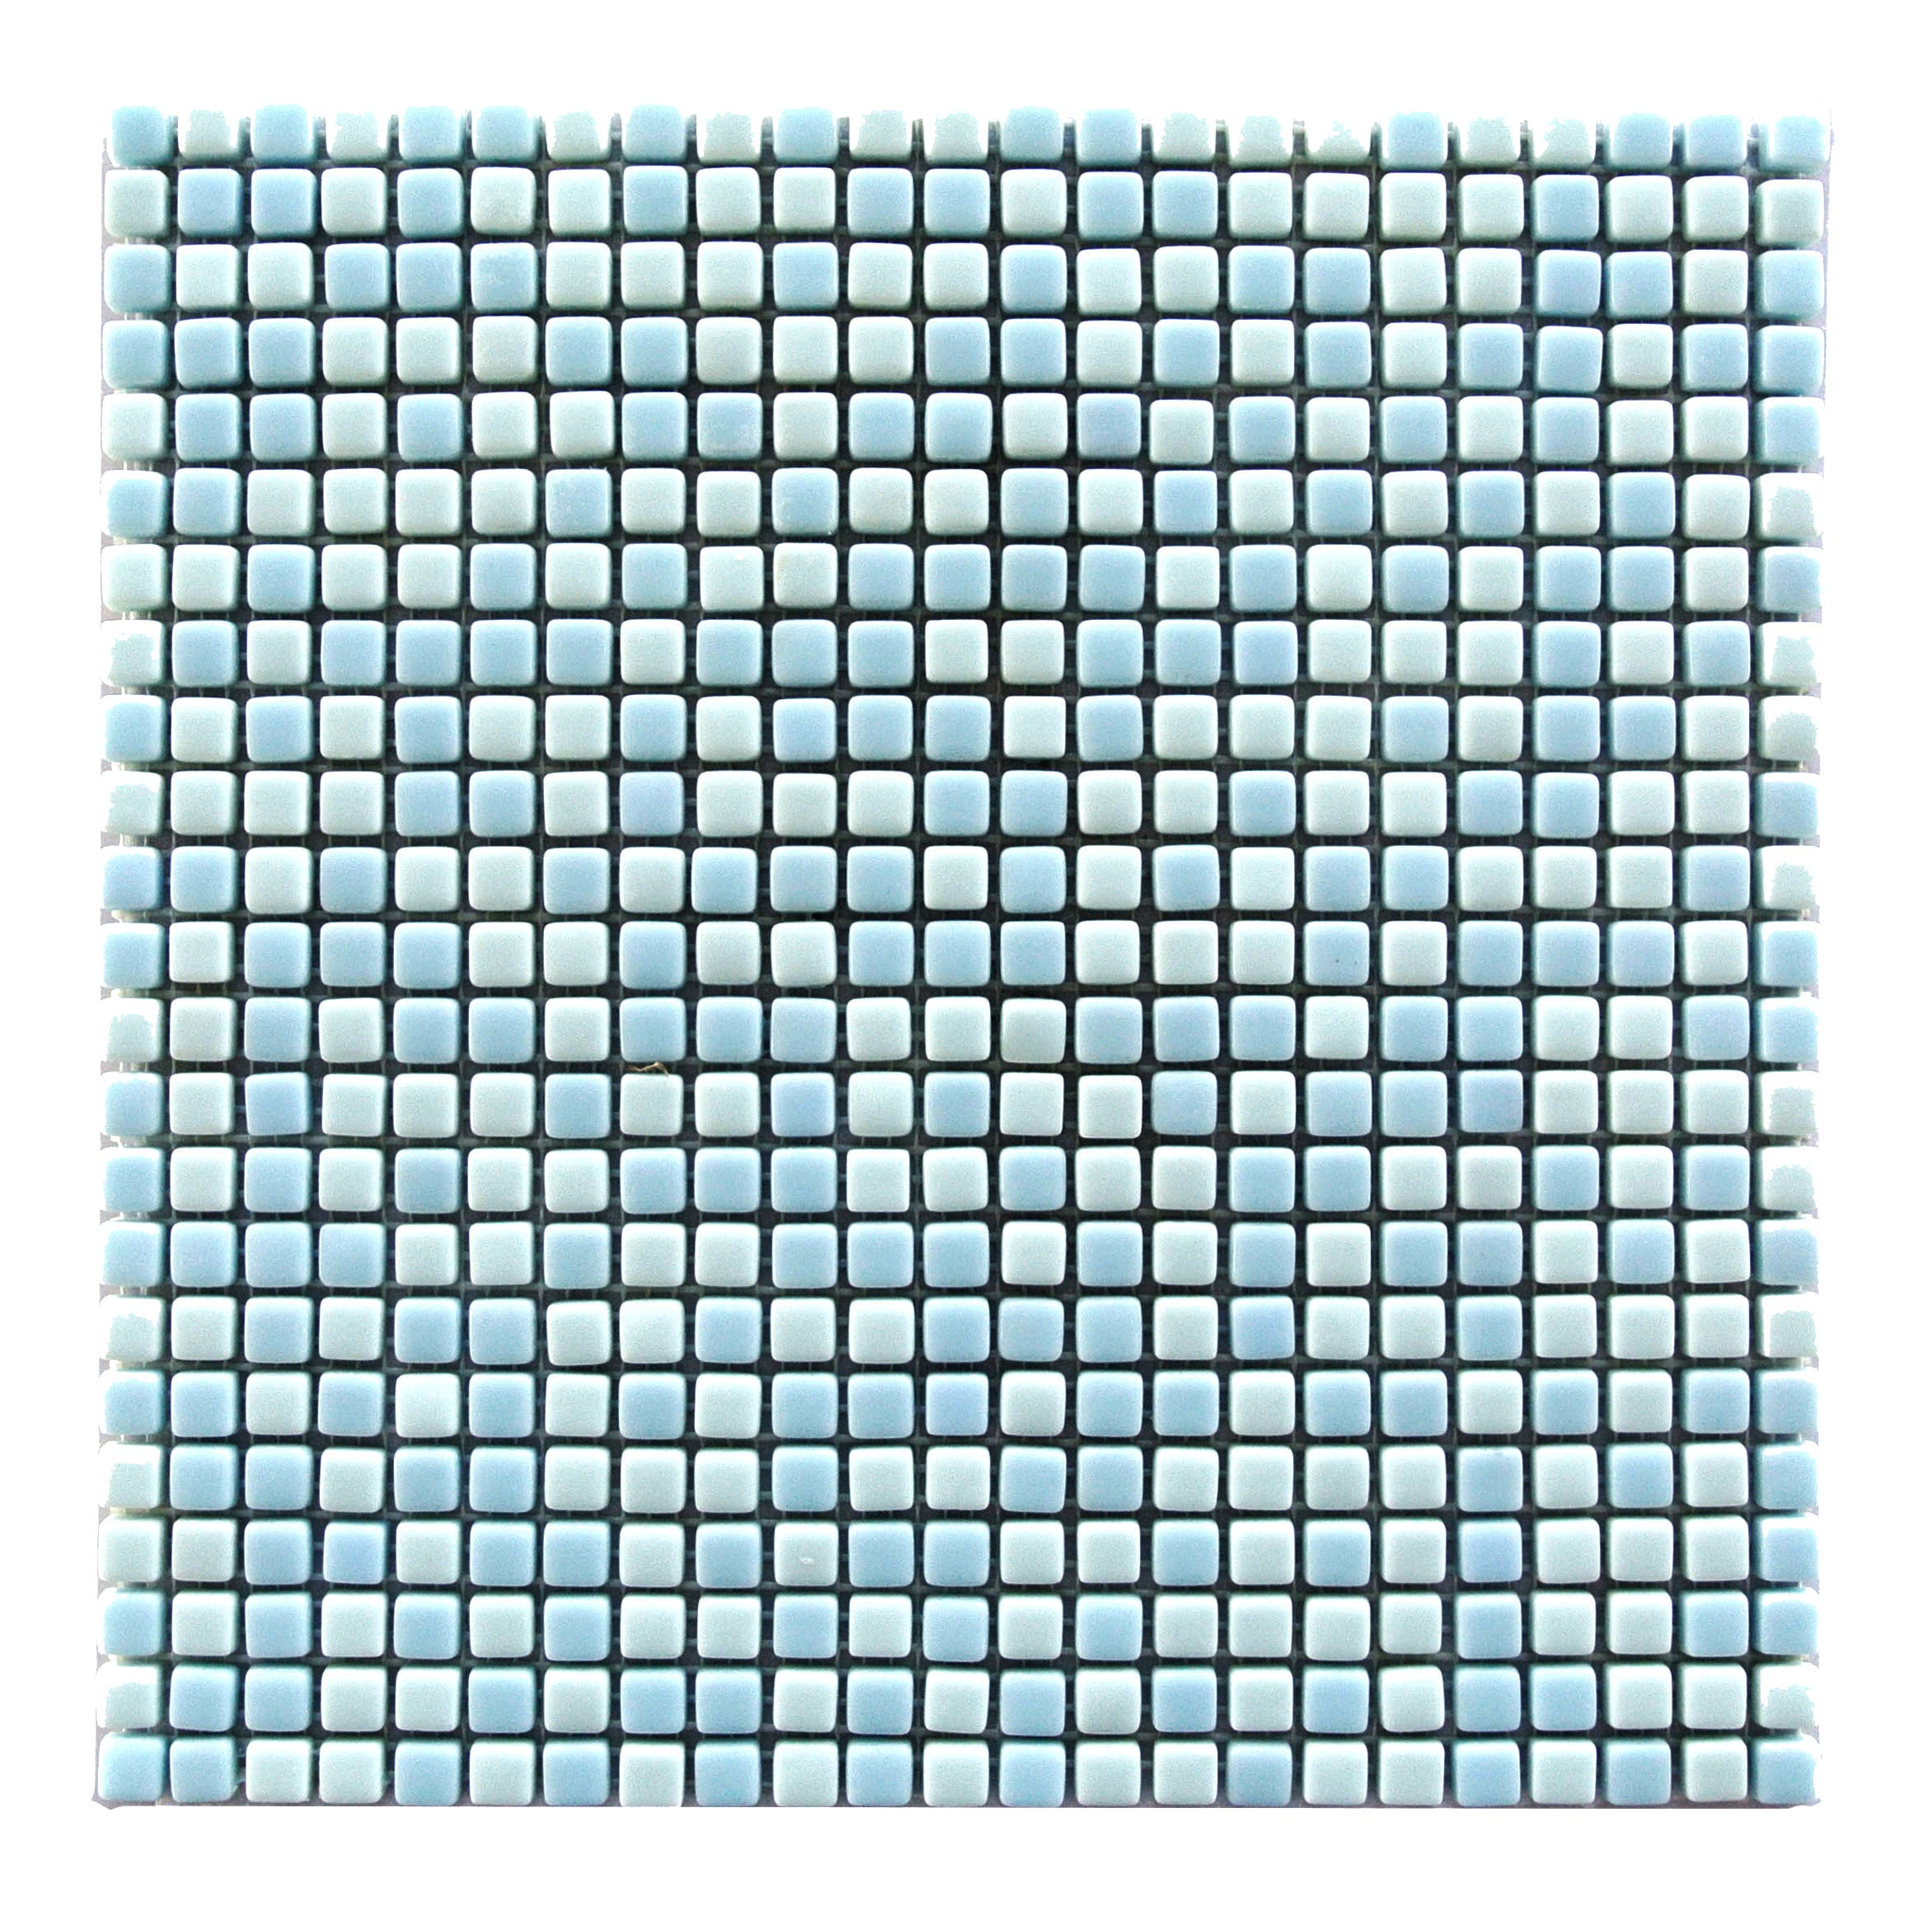 Full Body 0.5 in x 0.5 in Glass Square Mosaic in LIGHT BLUE Glossy